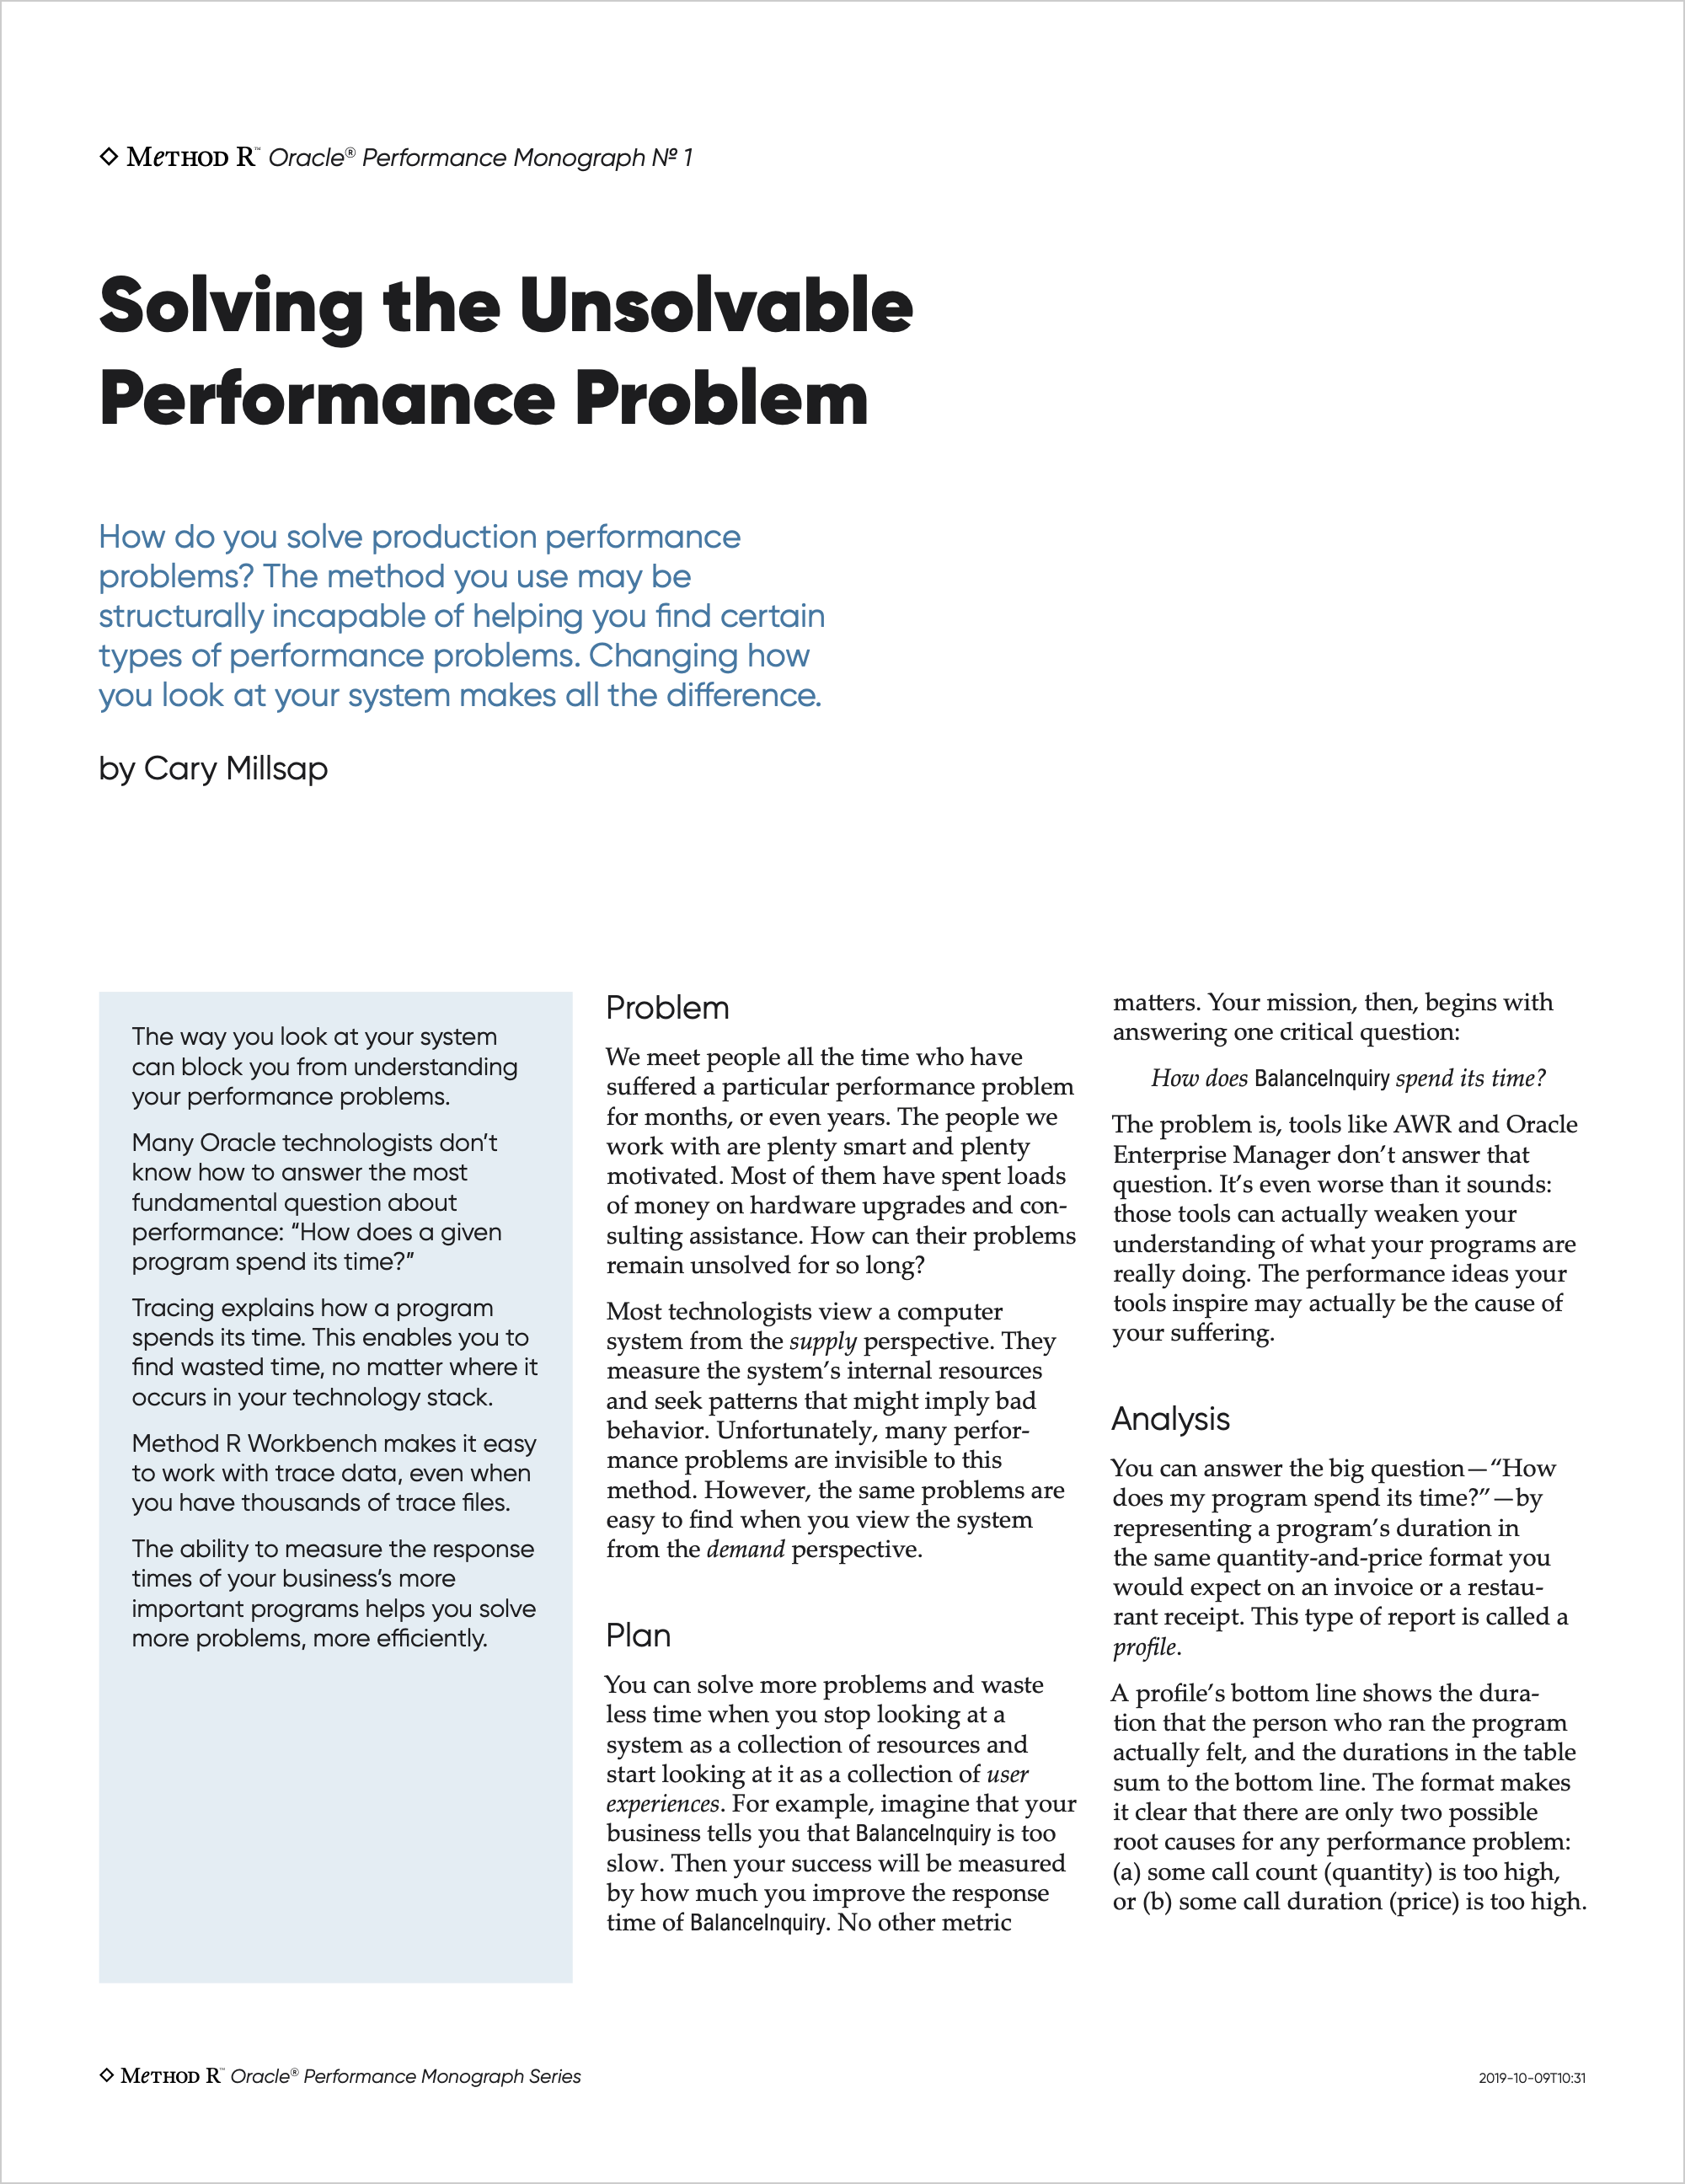 Solving the Unsolvable Performance Problem